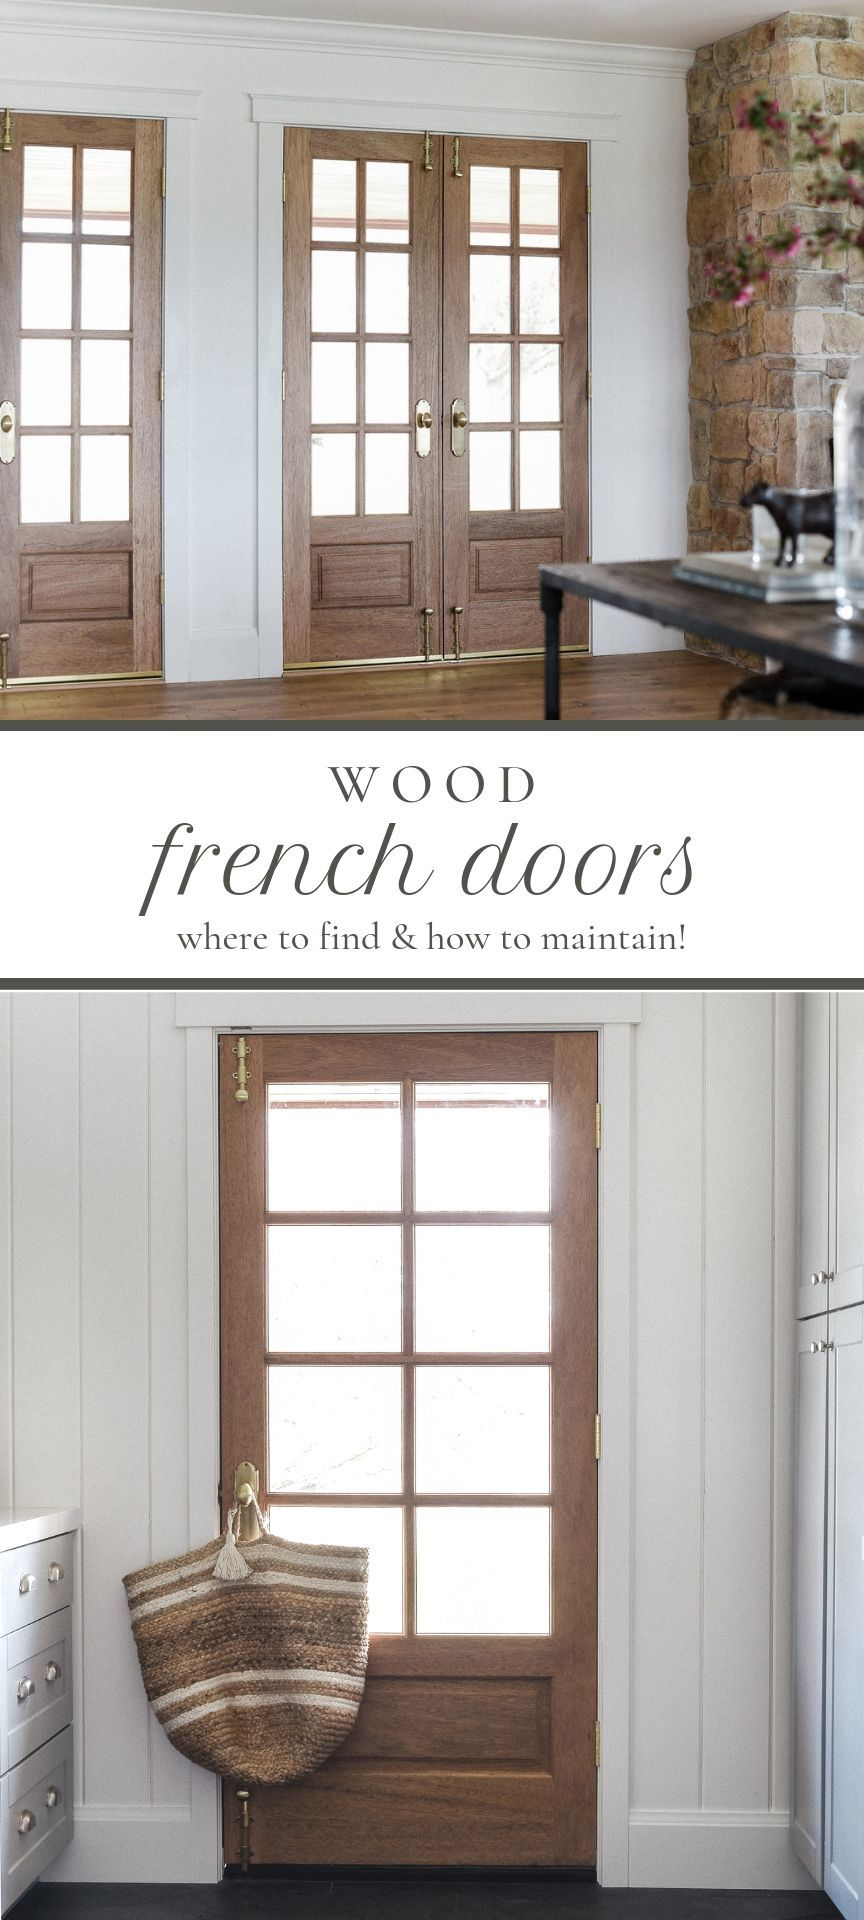 All About Our Wooden French Doors Boxwood Ave Wood French Doors Wooden French Doors French Doors Exterior